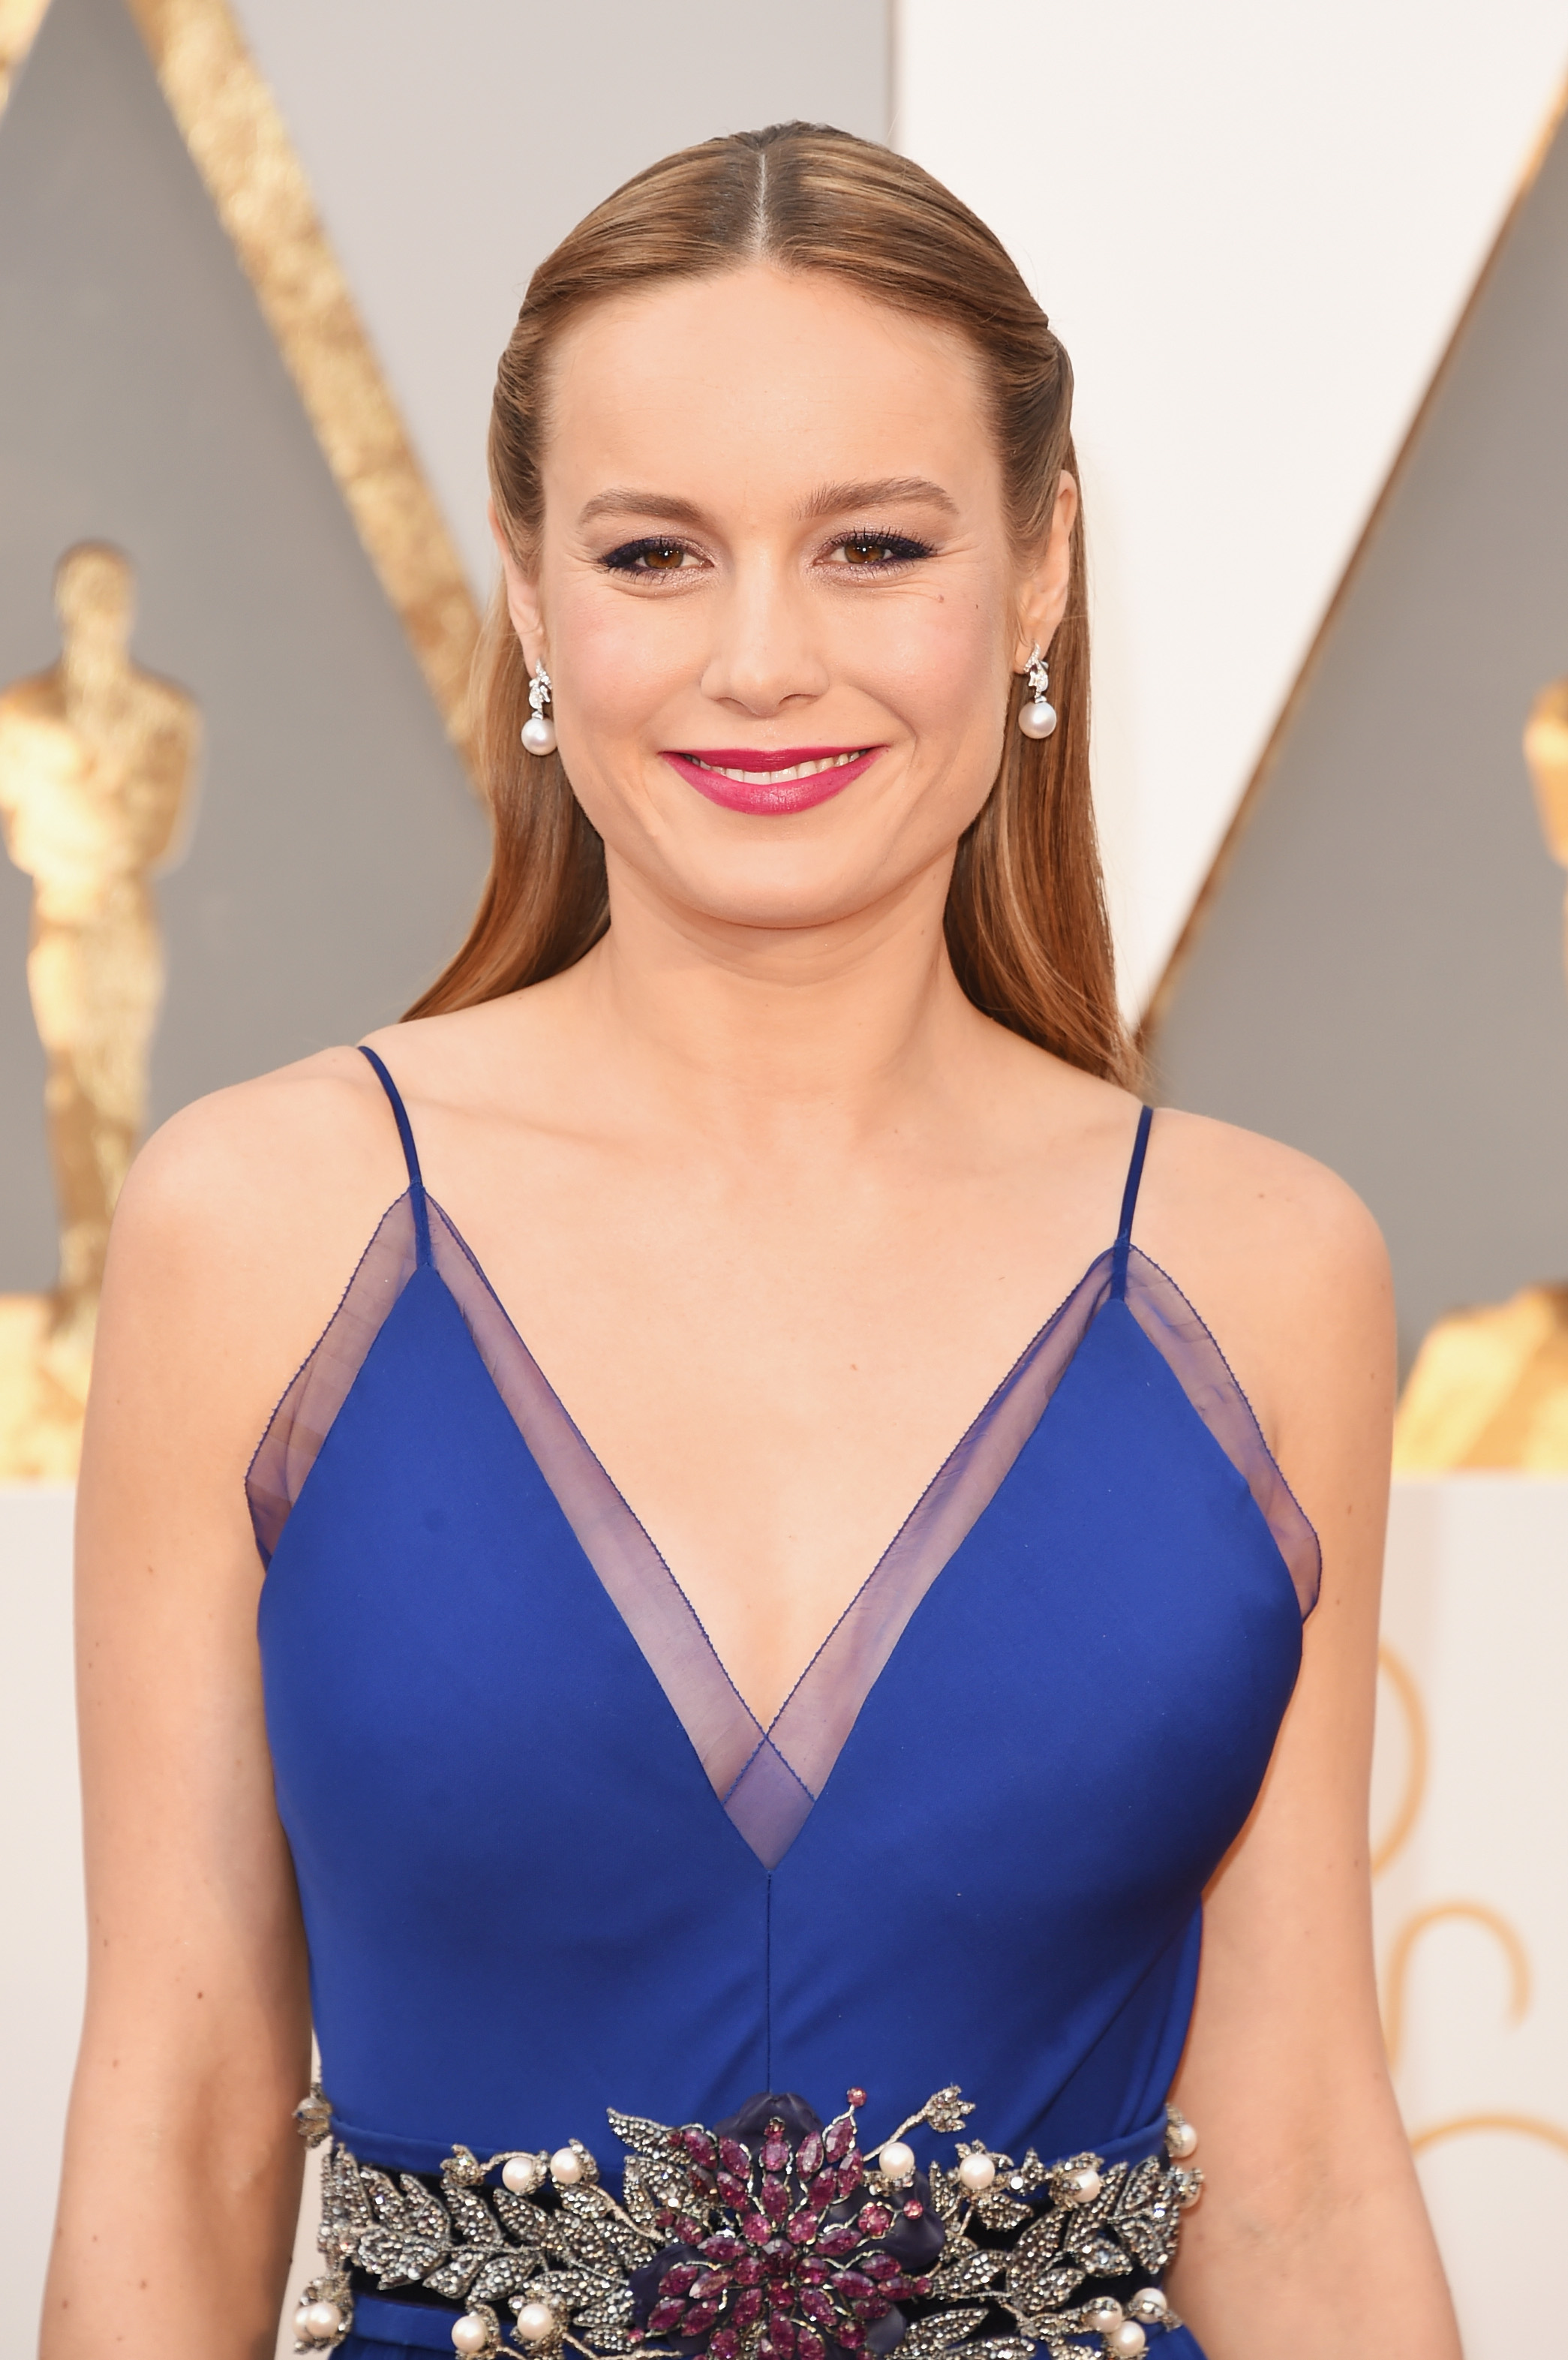 Brie Larson at the 88th Annual Academy Awards. (Photo courtesy of the Oscars)